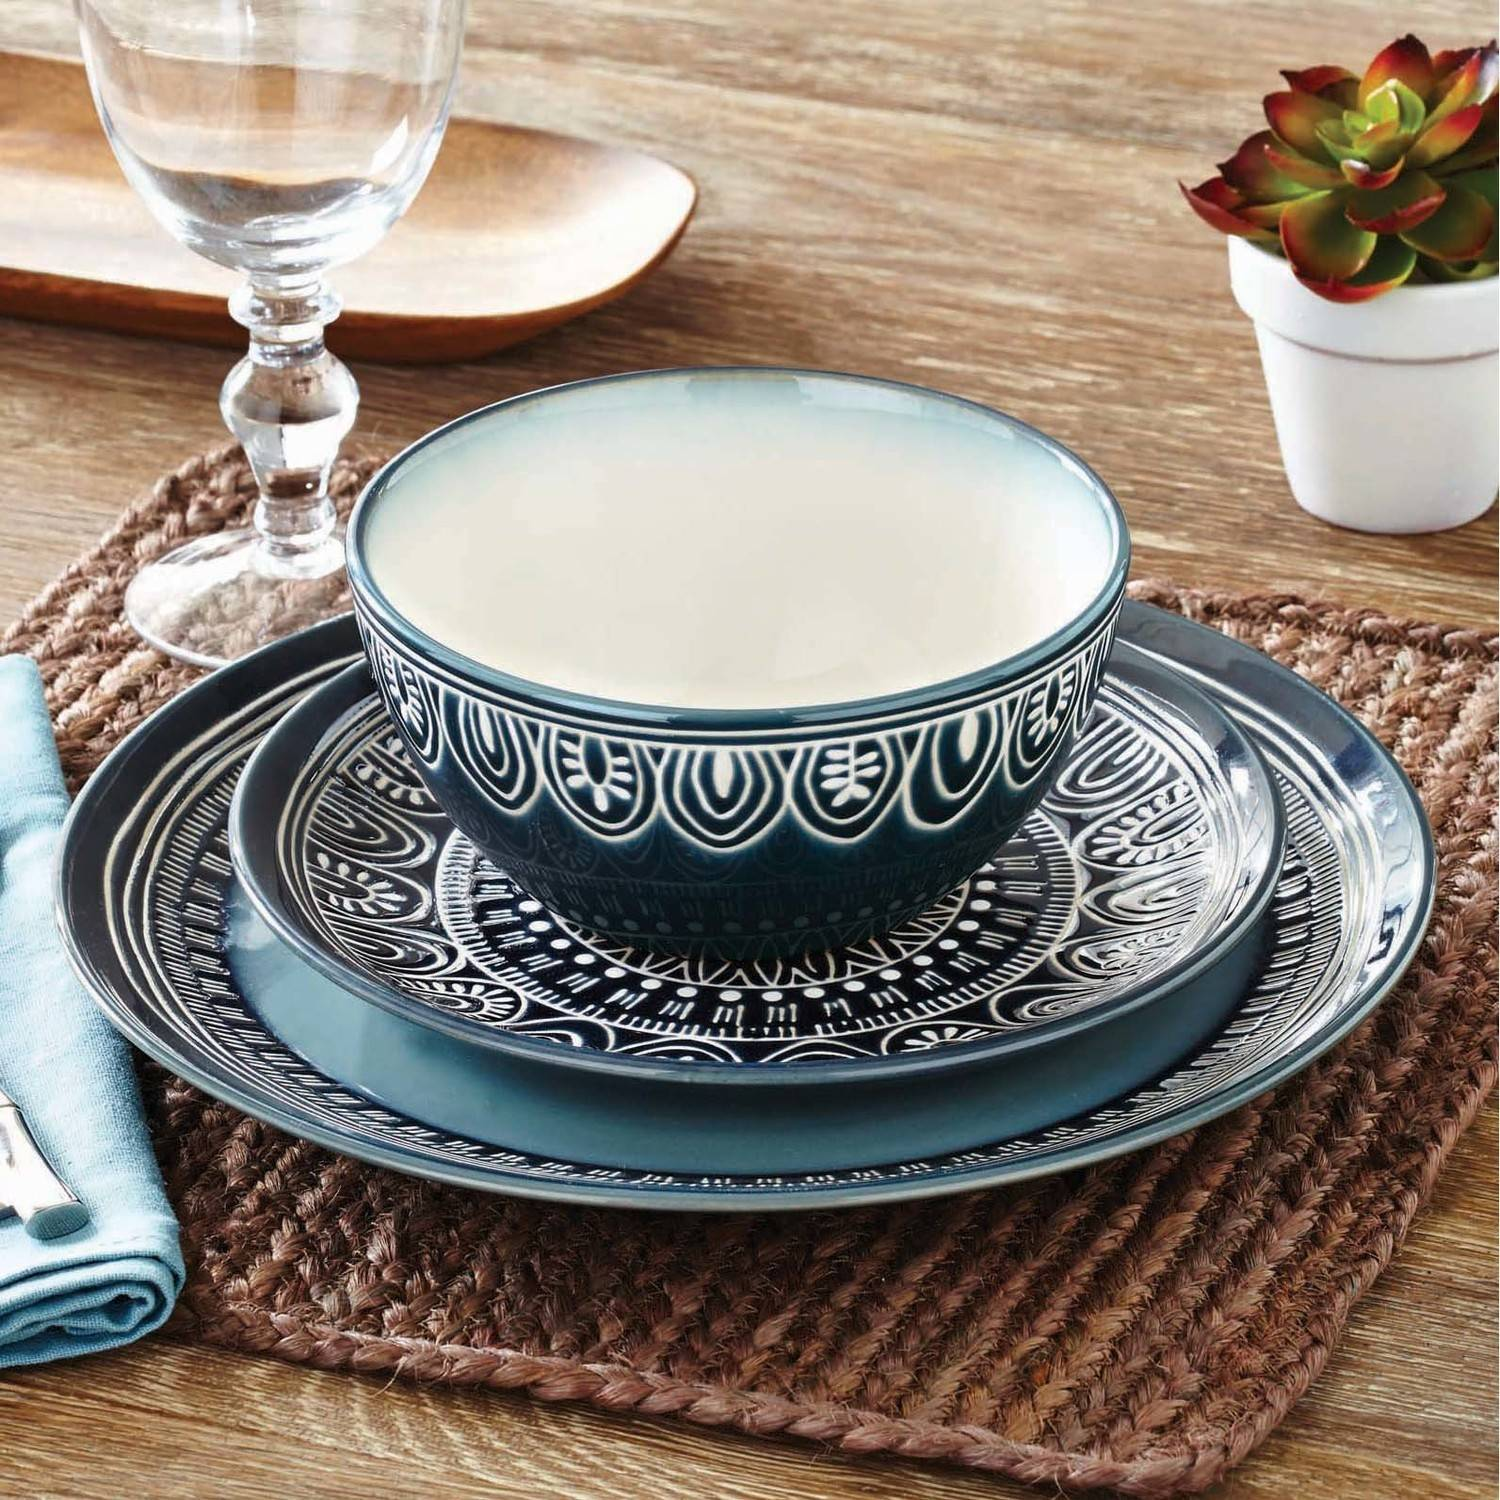 Better Homes and Gardens Teal Medallion 12-Piece Dinnerware Set Teal & Better Homes and Gardens Teal Medallion 12-Piece Dinnerware Set ...